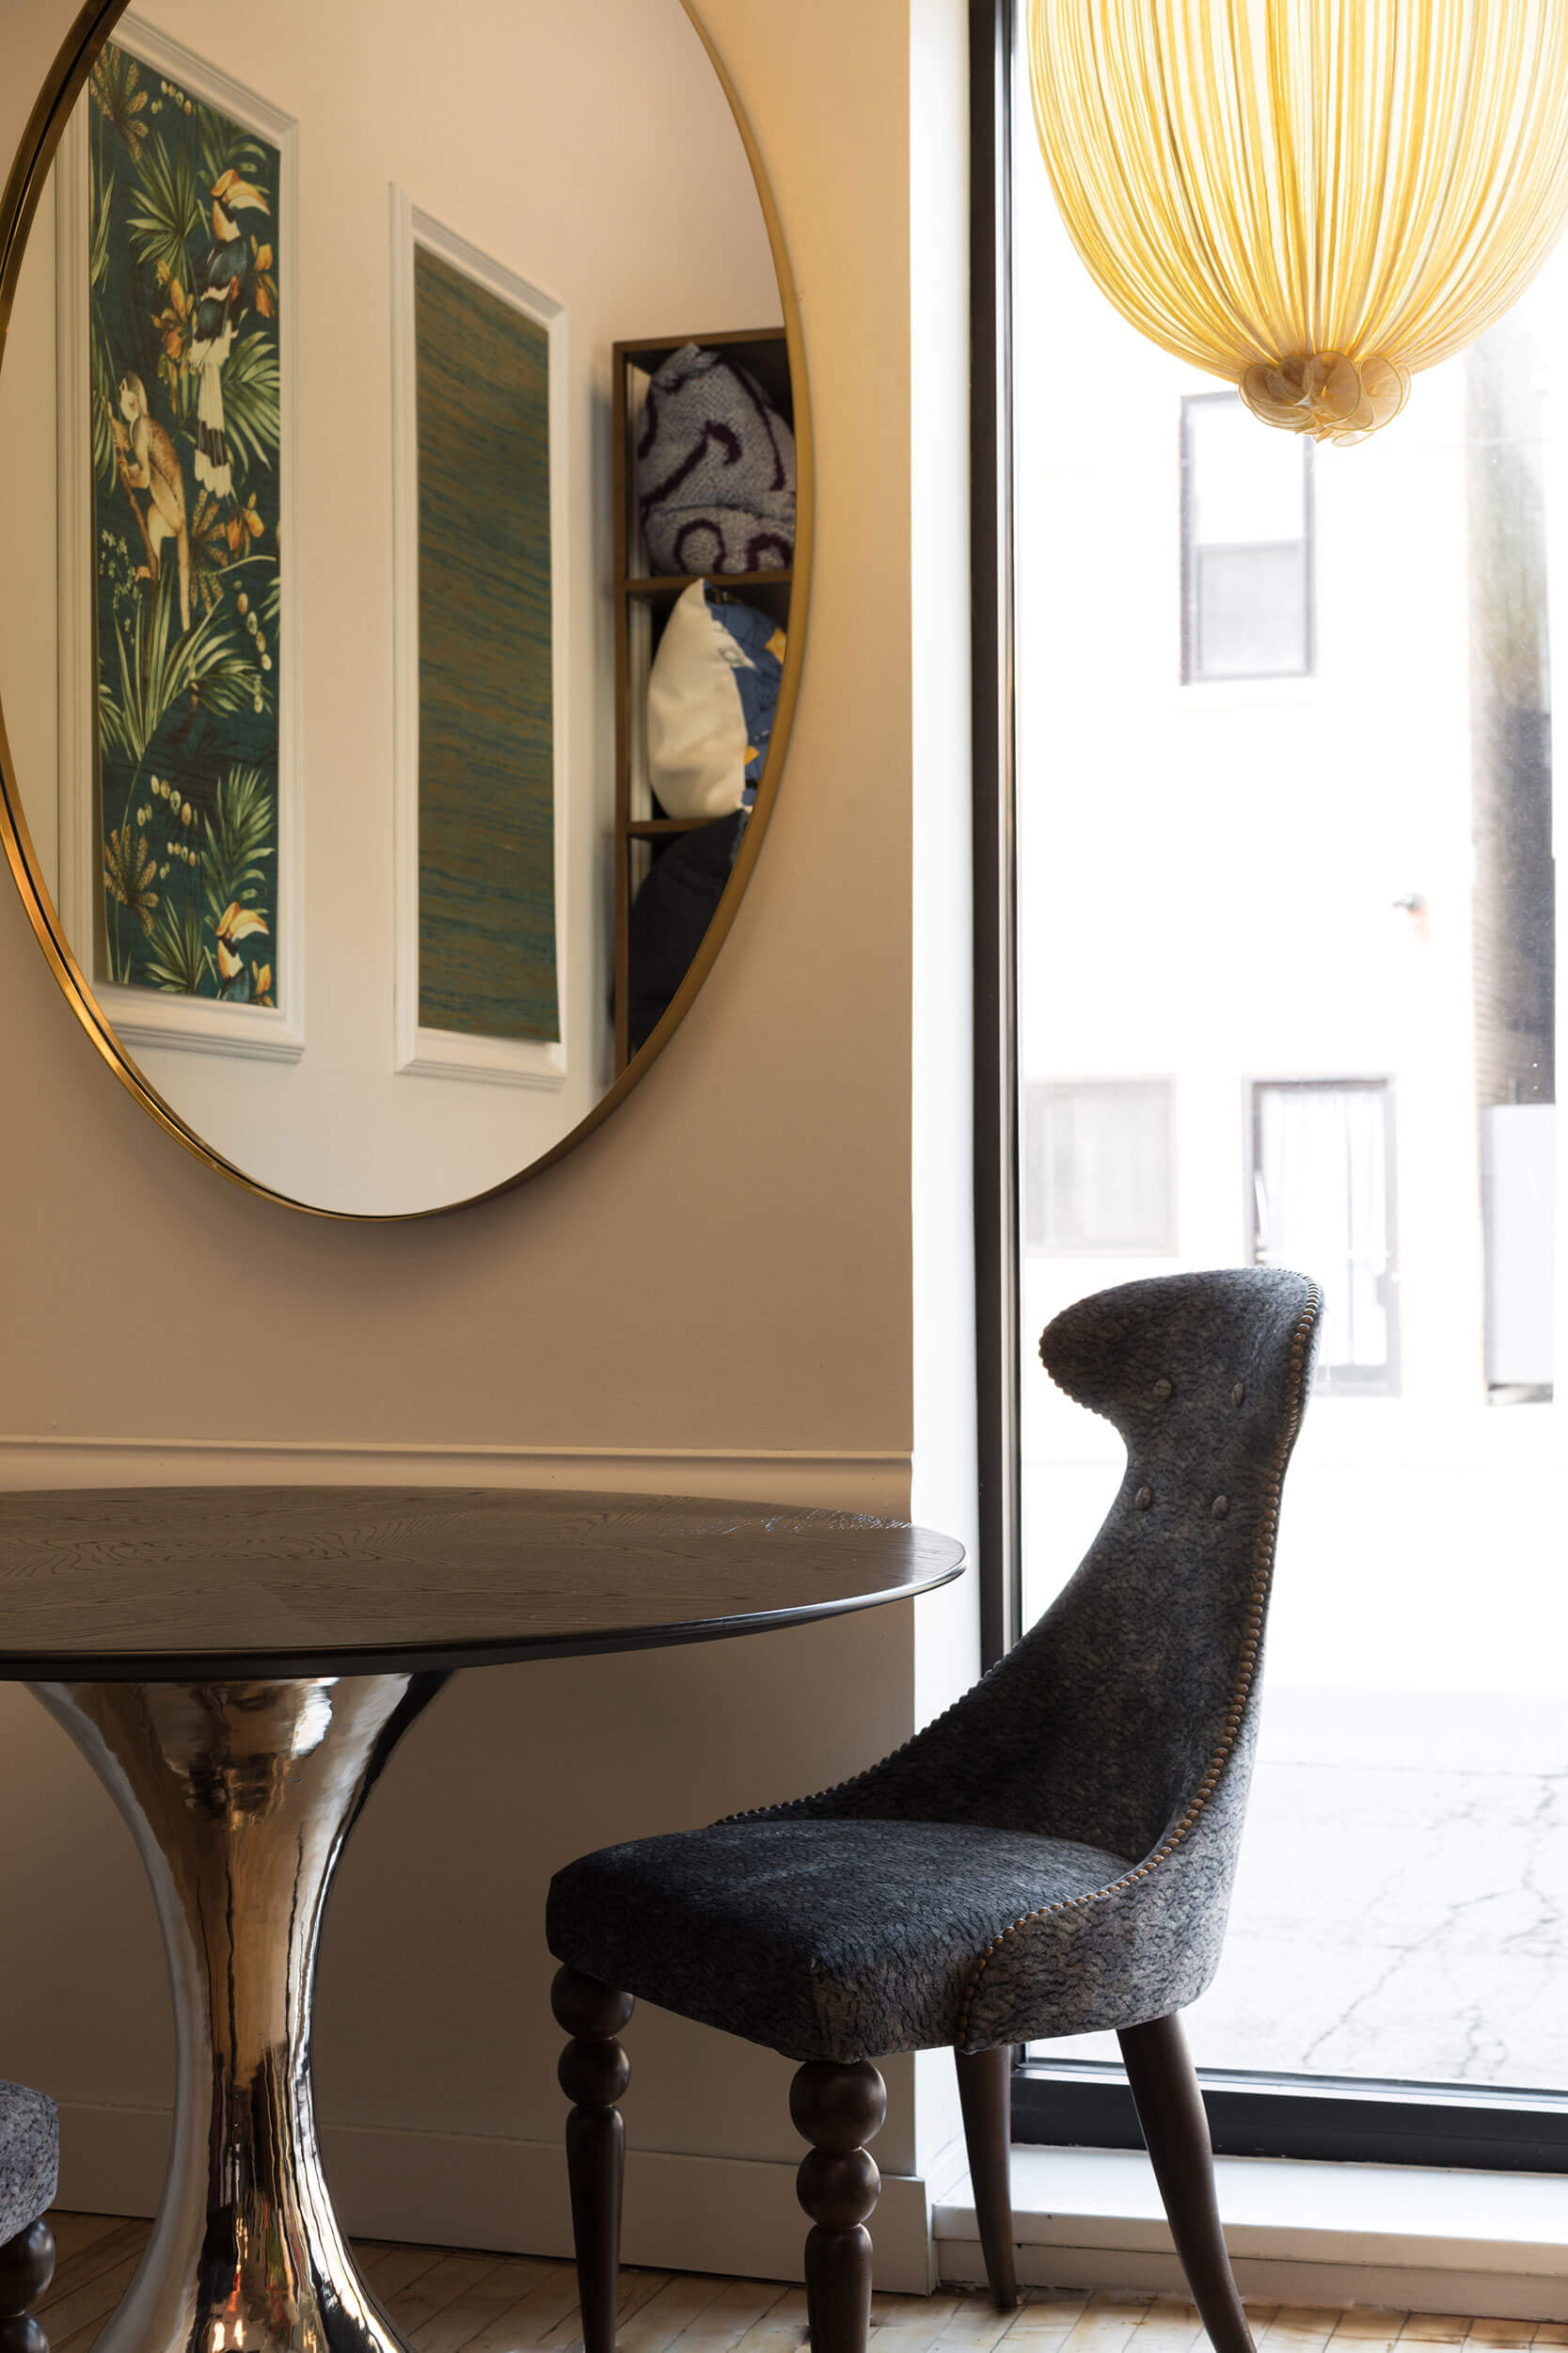 Dippa Pendant Light hanging above a dark, cushioned chair, next to a round wooden table and a circular mirror